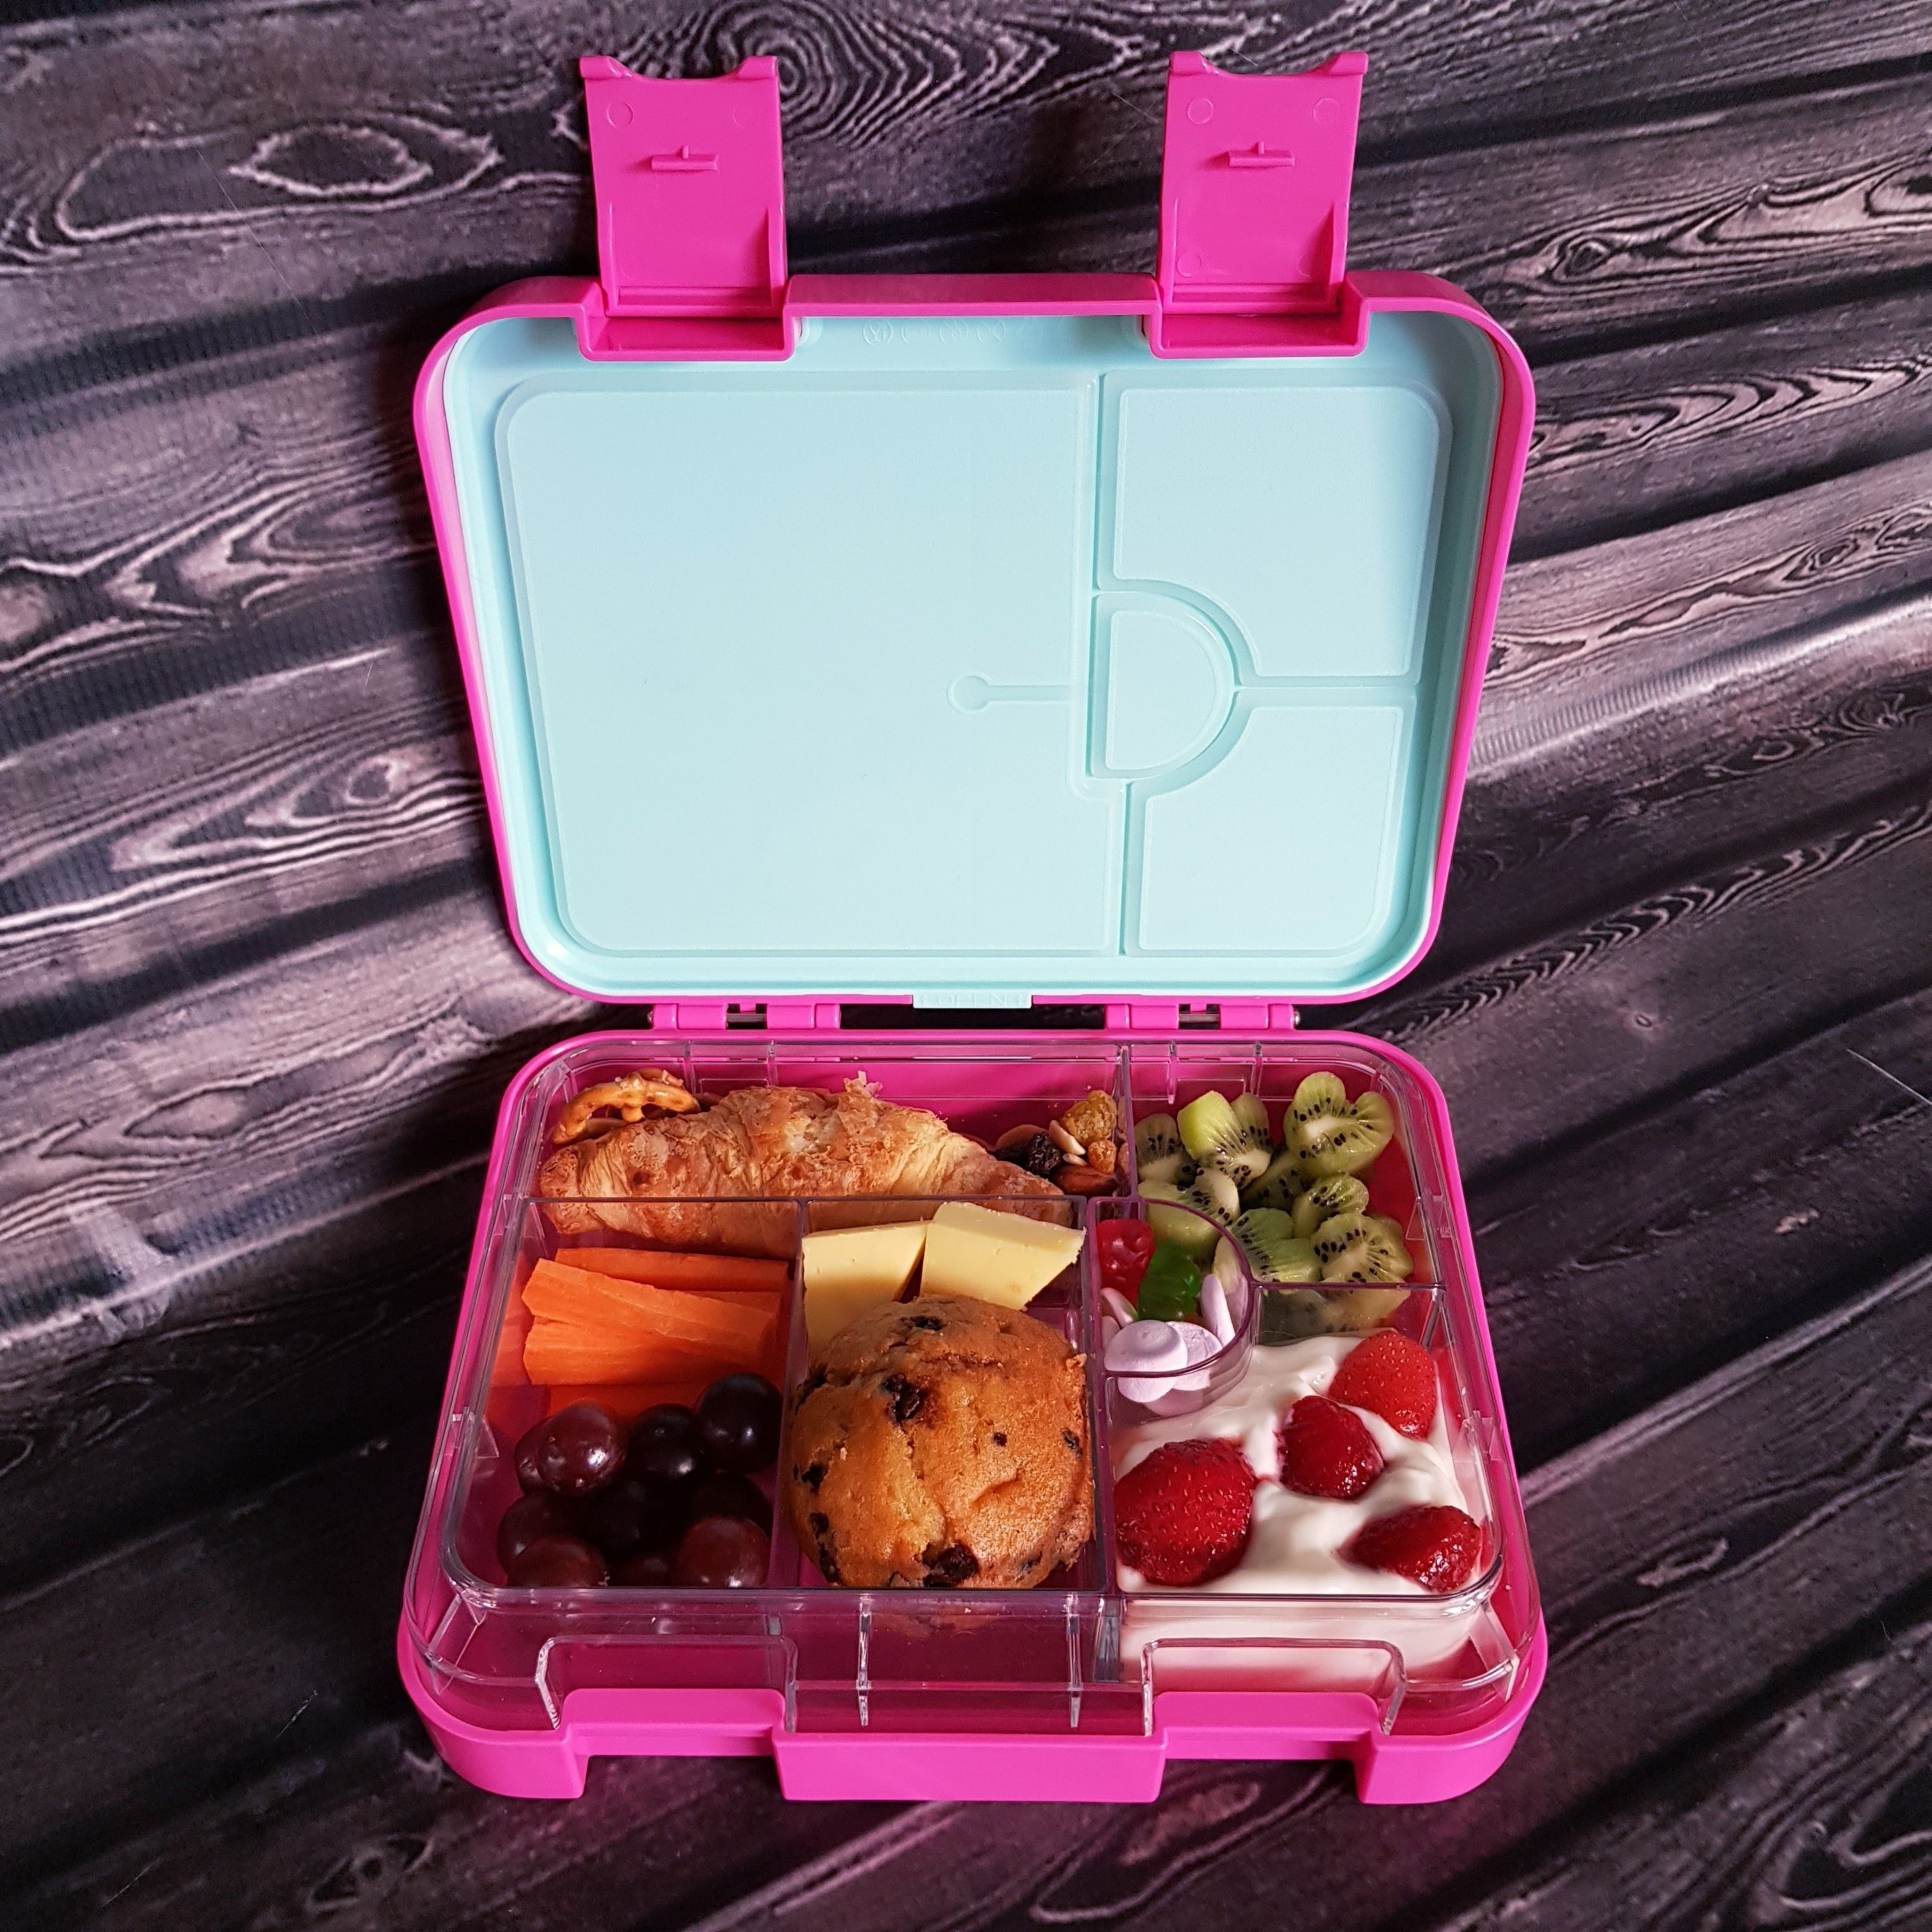 Fun Facts Re Our Nova Bento Lunchbox Name The Word Nova Comes From The Latin Word For New Star A Nova Is An Explosion Lunch Box Bento Box Lunch Bento